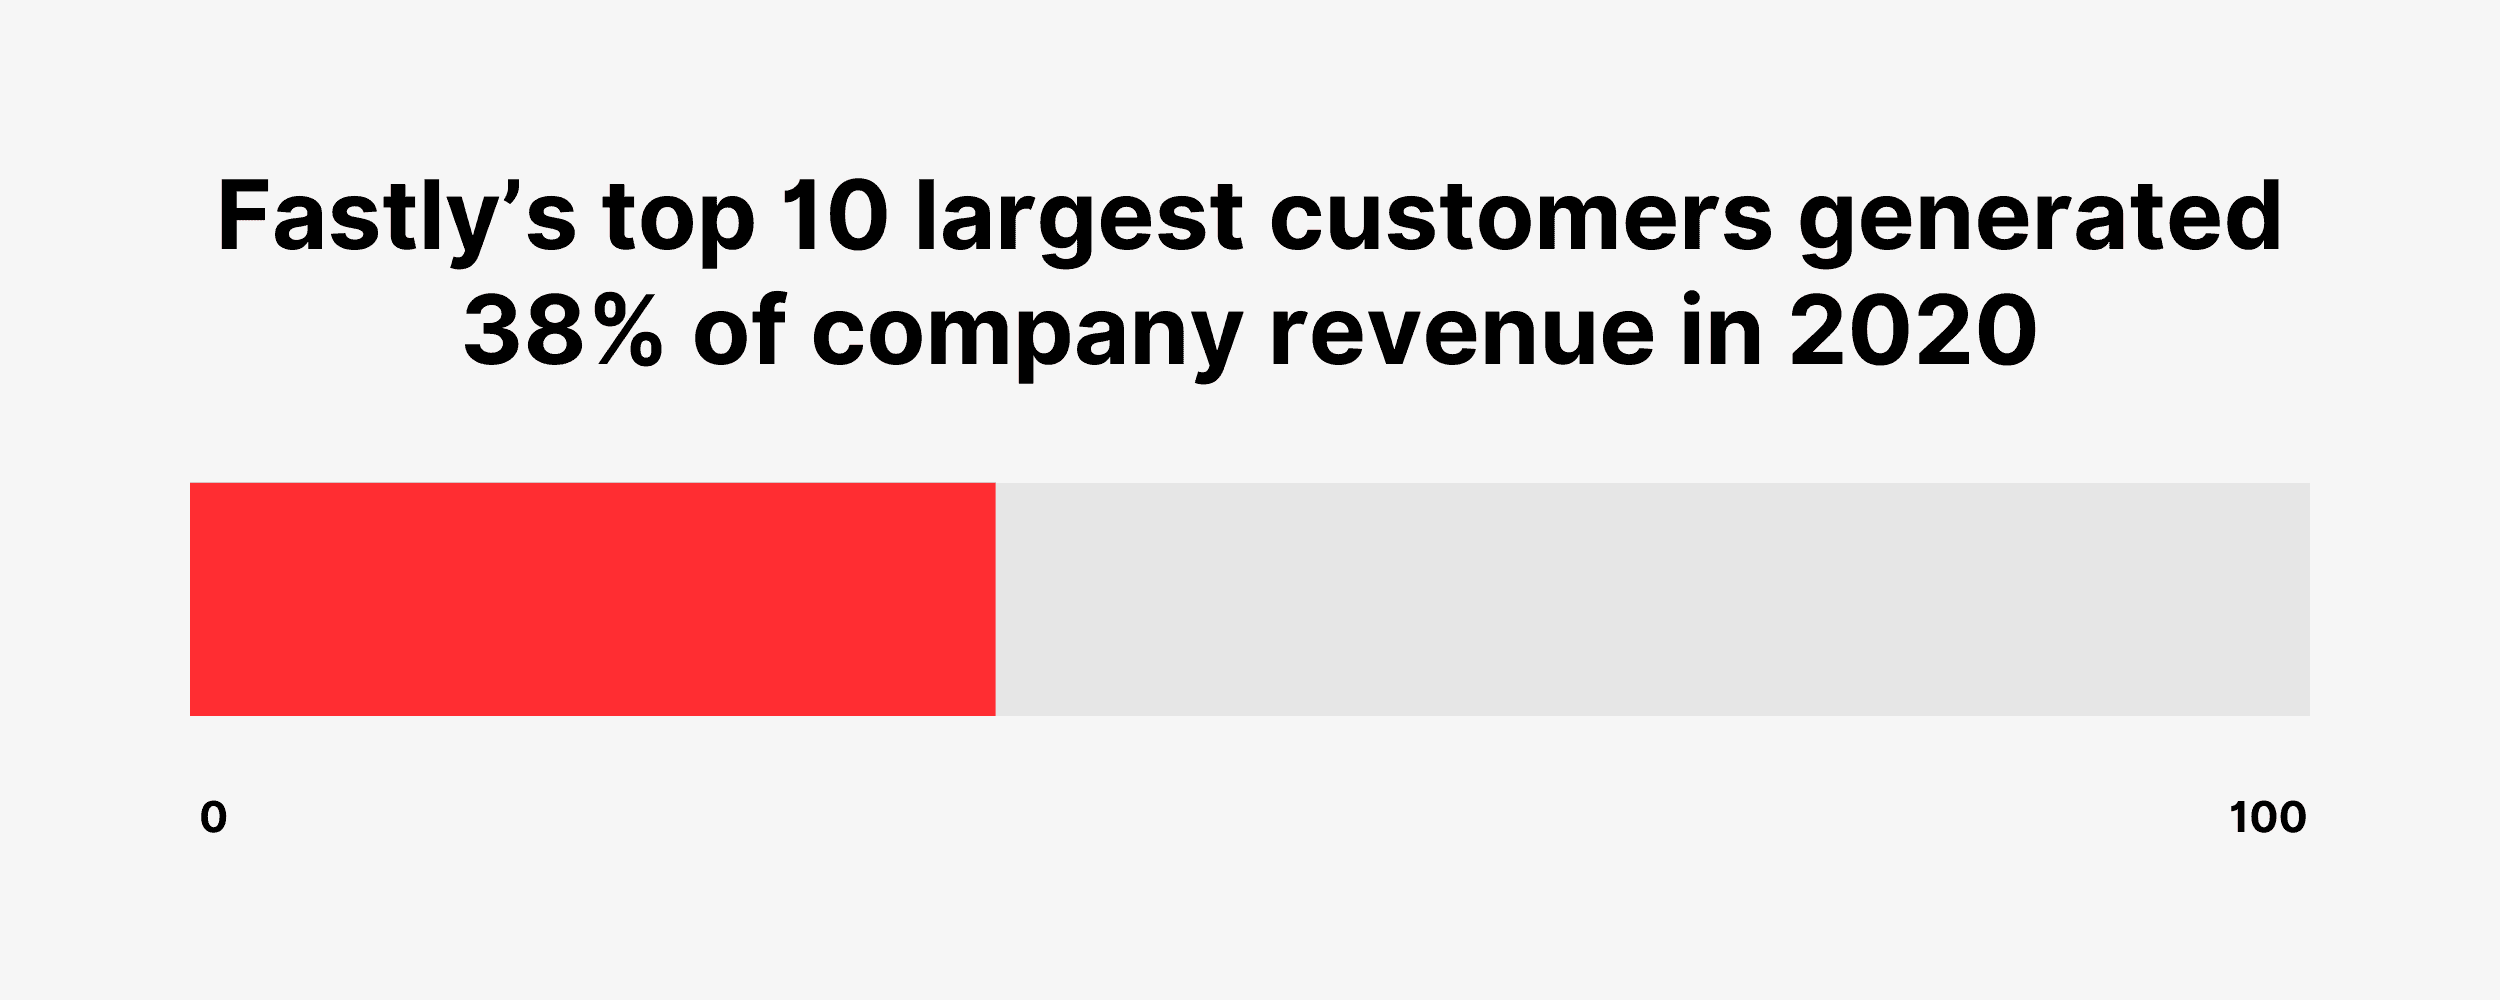 Fastly's top 10 largest customers generated 38% of company revenue in 2020